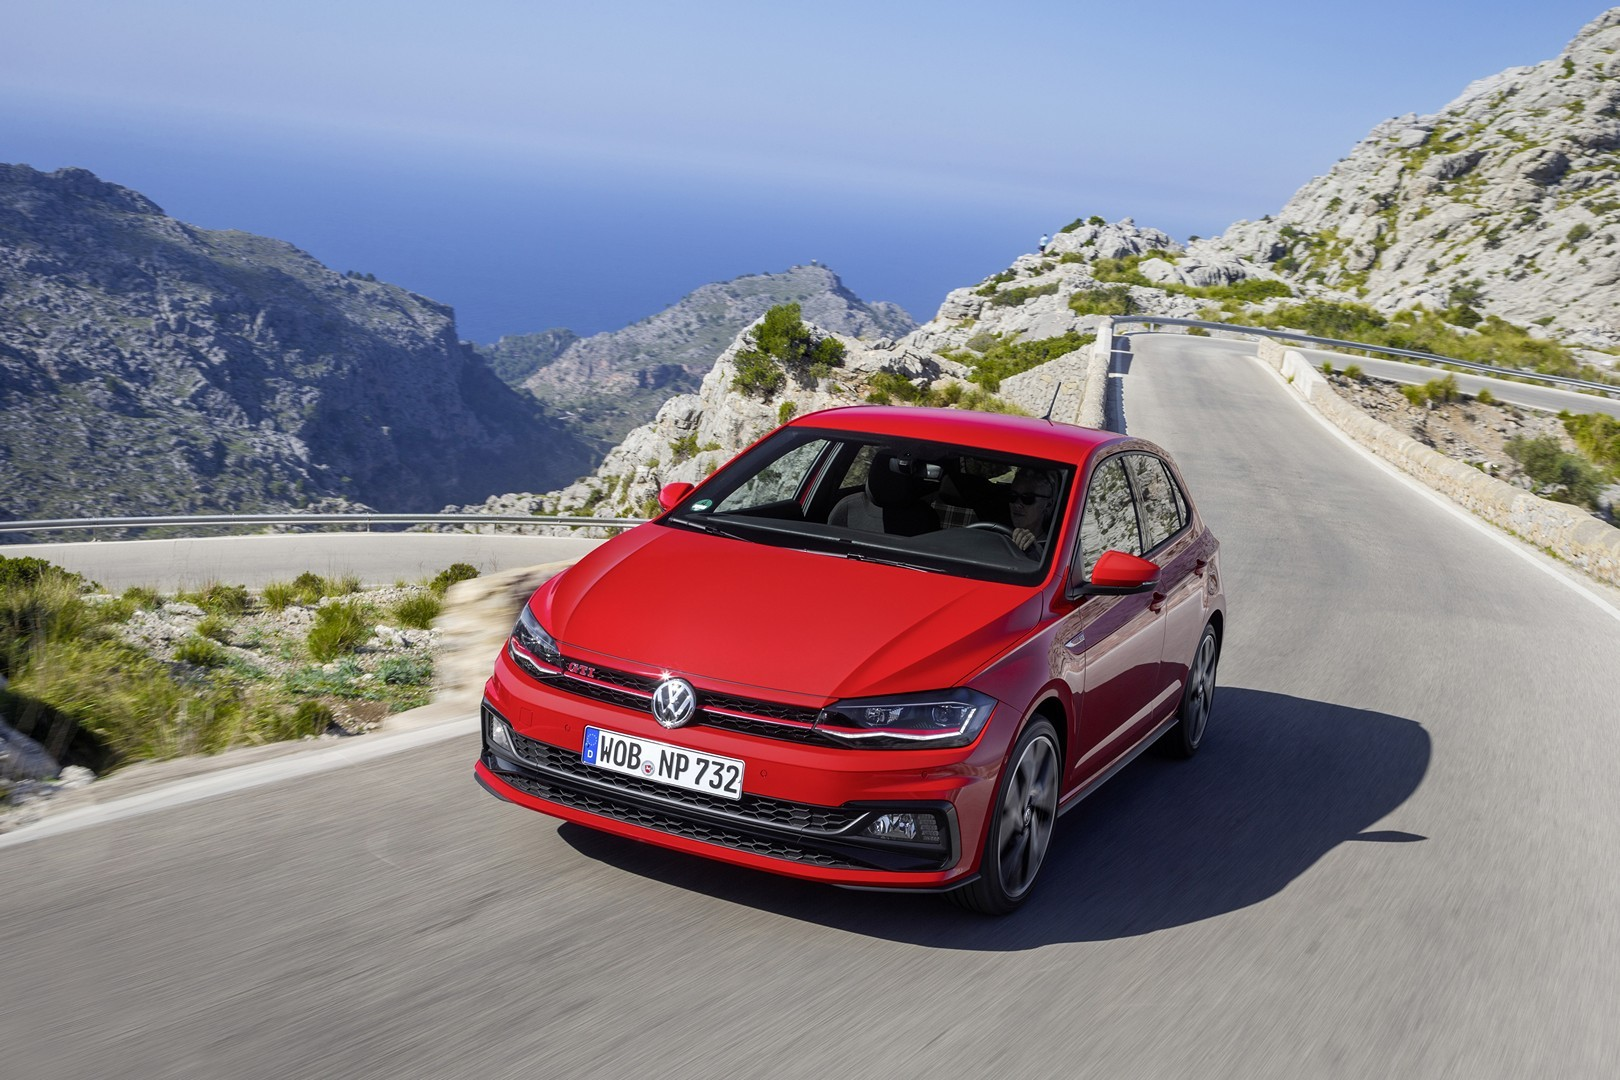 2018 Volkswagen Polo GTI Sporty Looks in New Photo Gallery ...